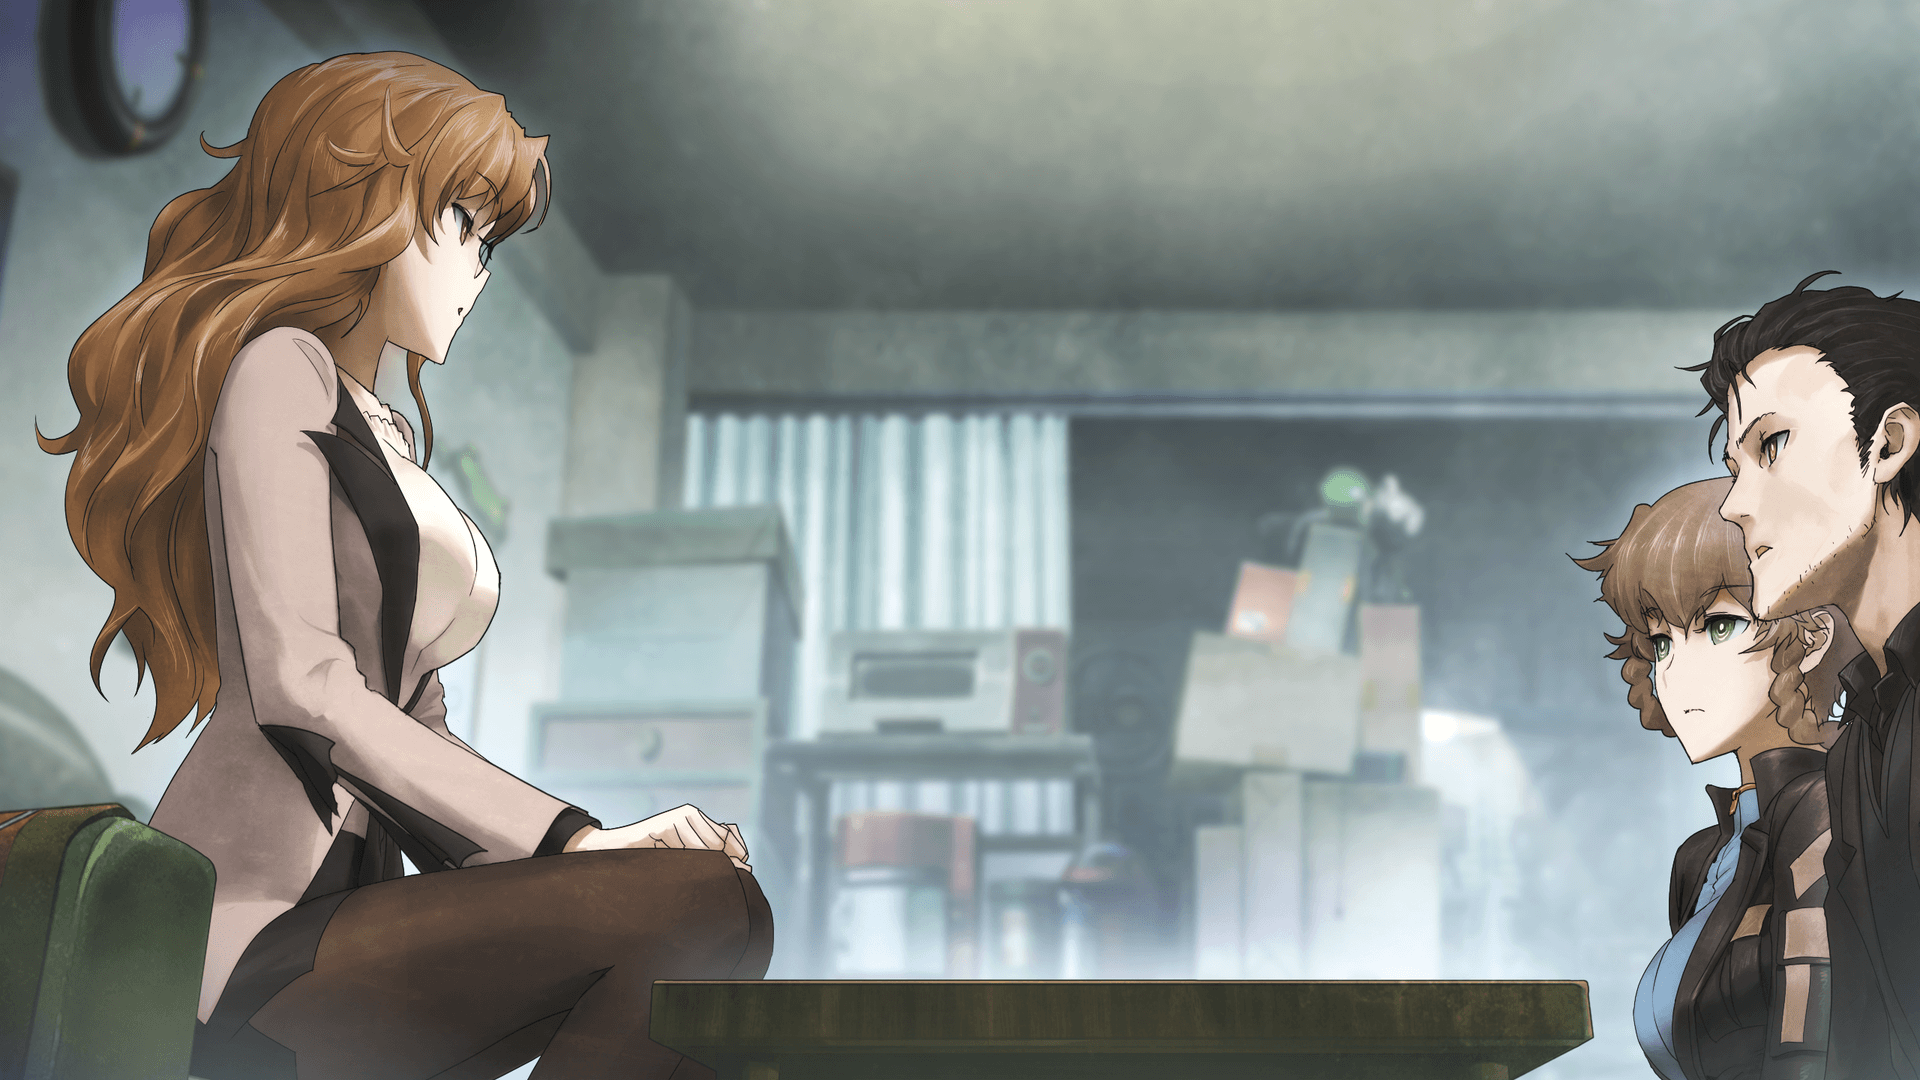 Steins;Gate 0 CG Wallpapers